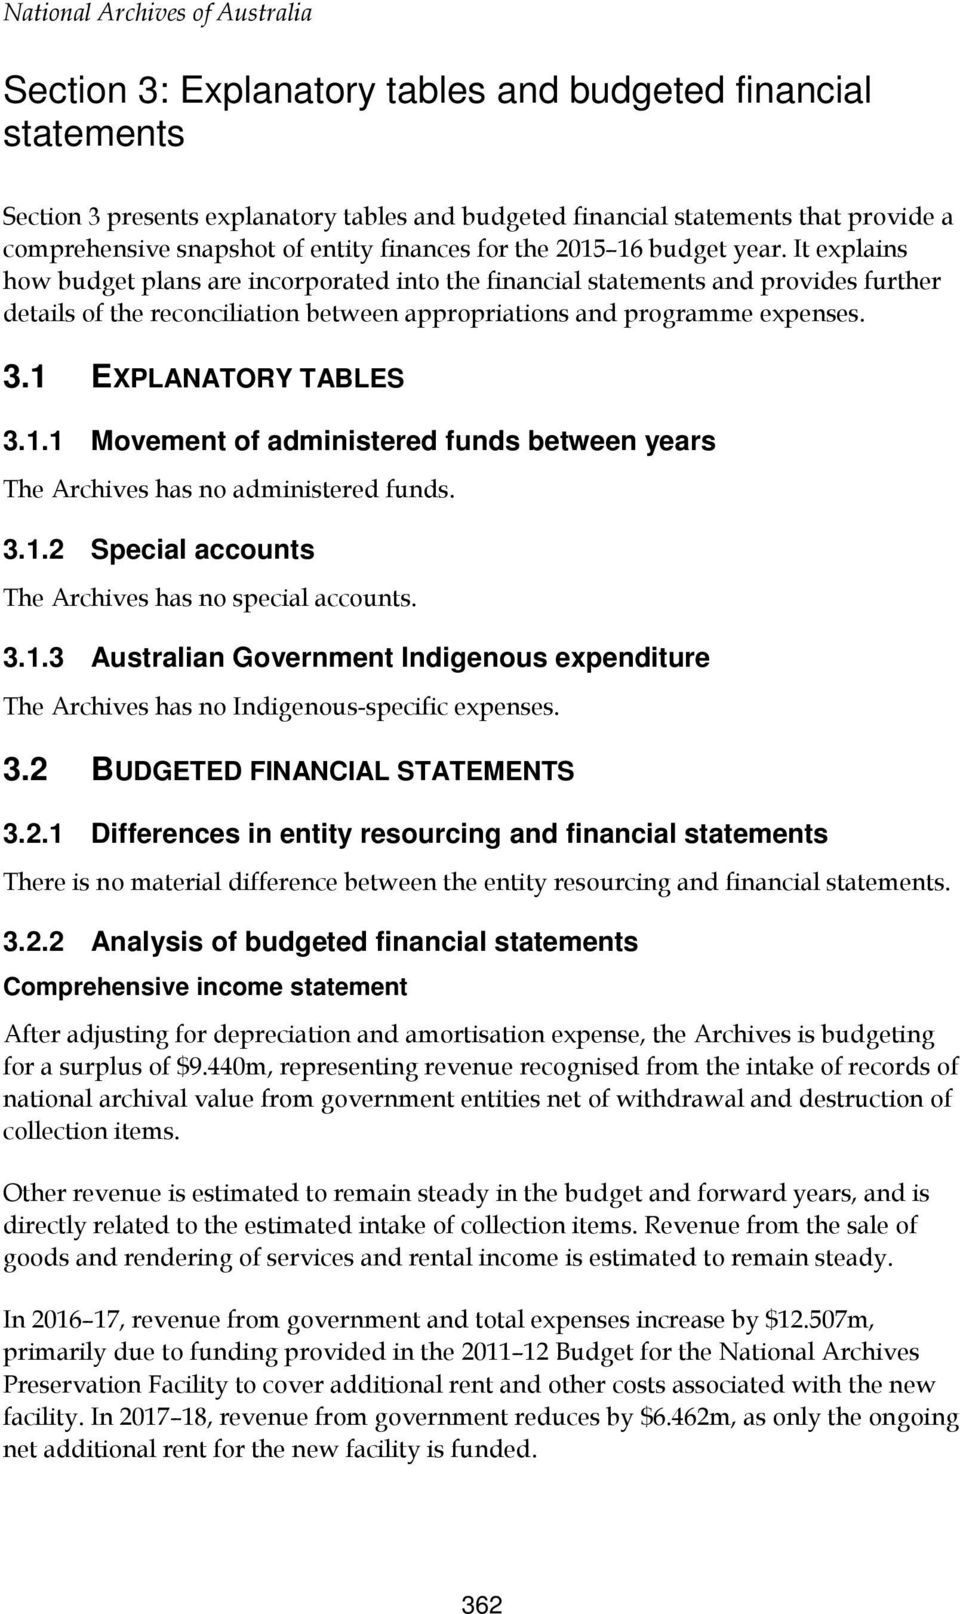 1 EXPLANATORY TABLES 3.1.1 Movement of administered funds between years The Archives has no administered funds. 3.1.2 Special accounts The Archives has no special accounts. 3.1.3 Australian Government Indigenous expenditure The Archives has no Indigenous-specific expenses.